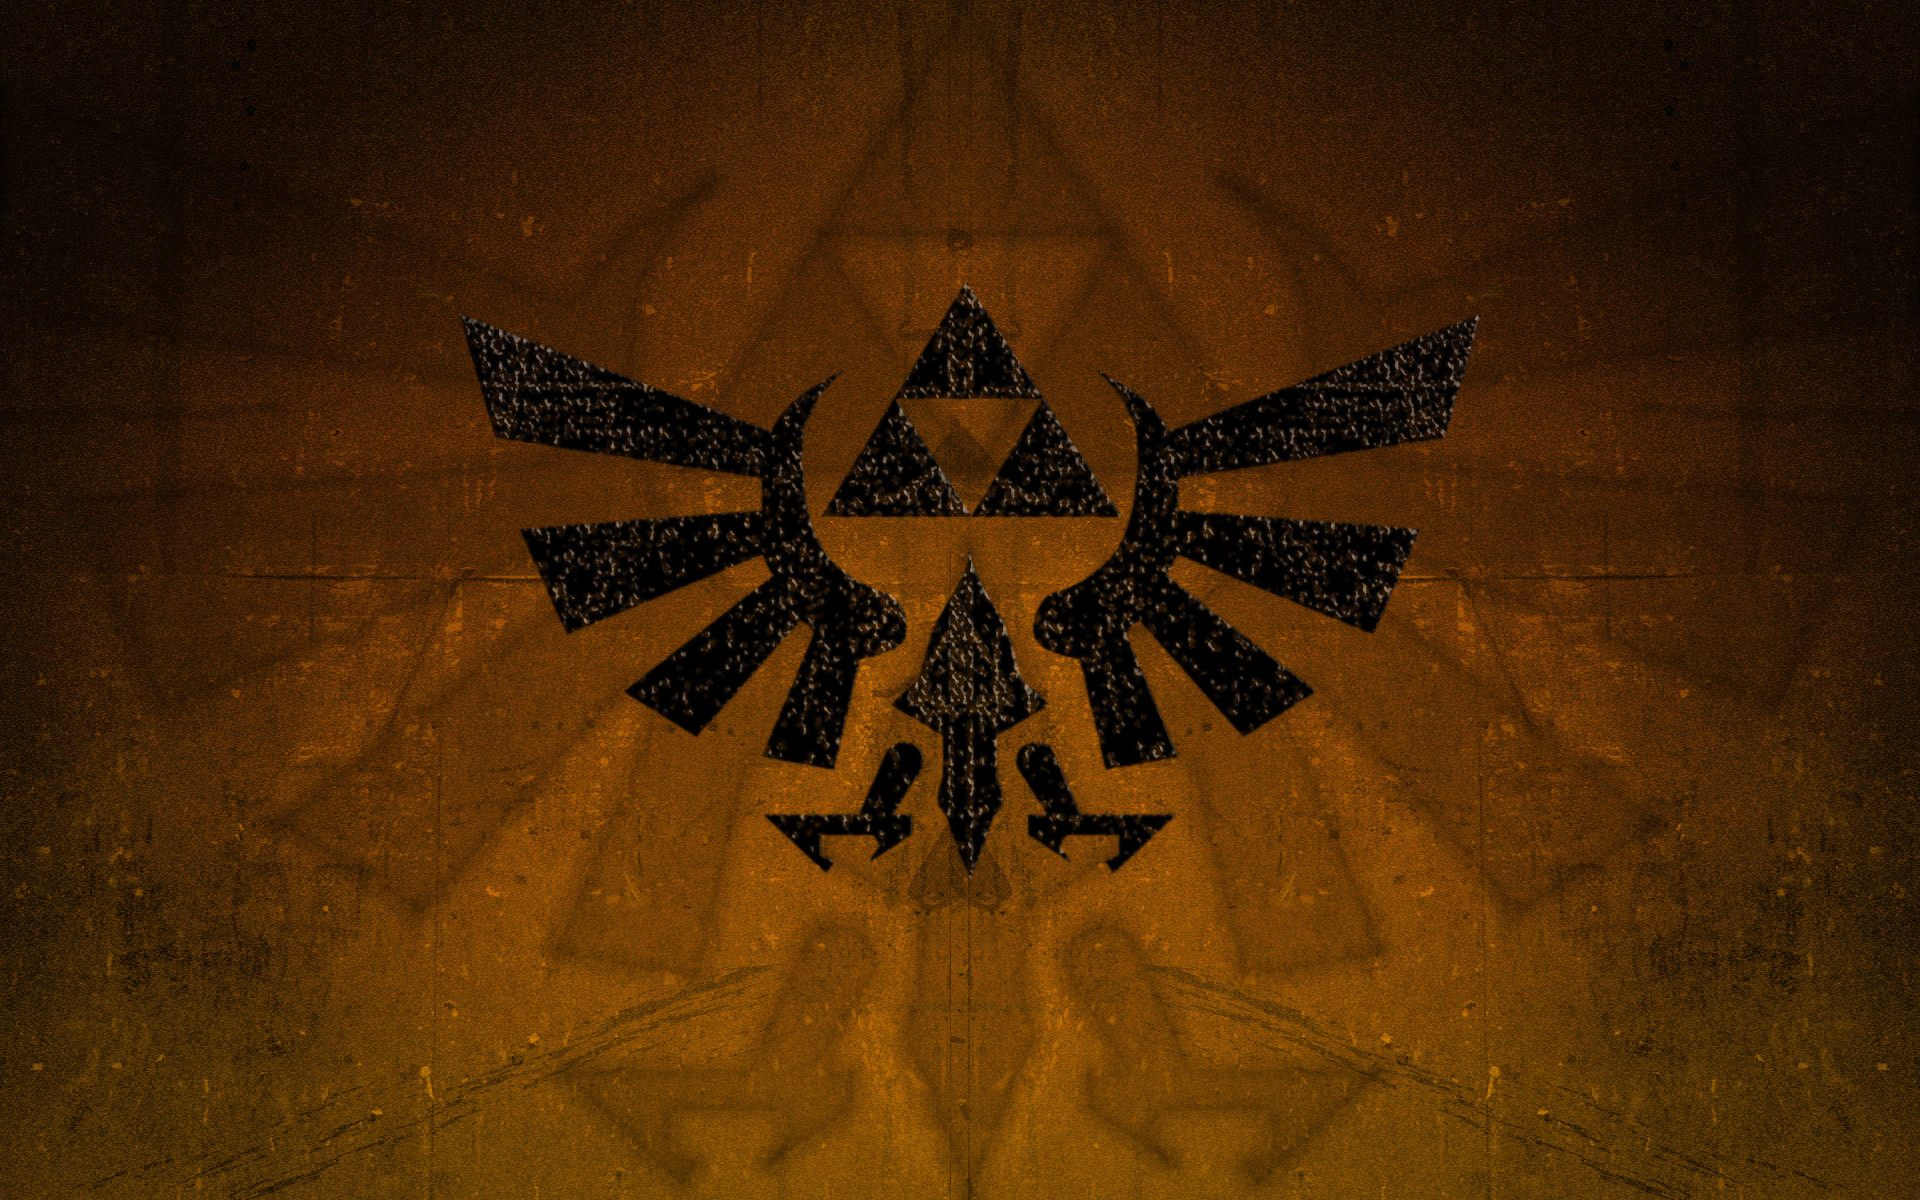 1920x1200 Legend Of Zelda Wallpapers Album On Imgur 1920Af 1200 Android 43